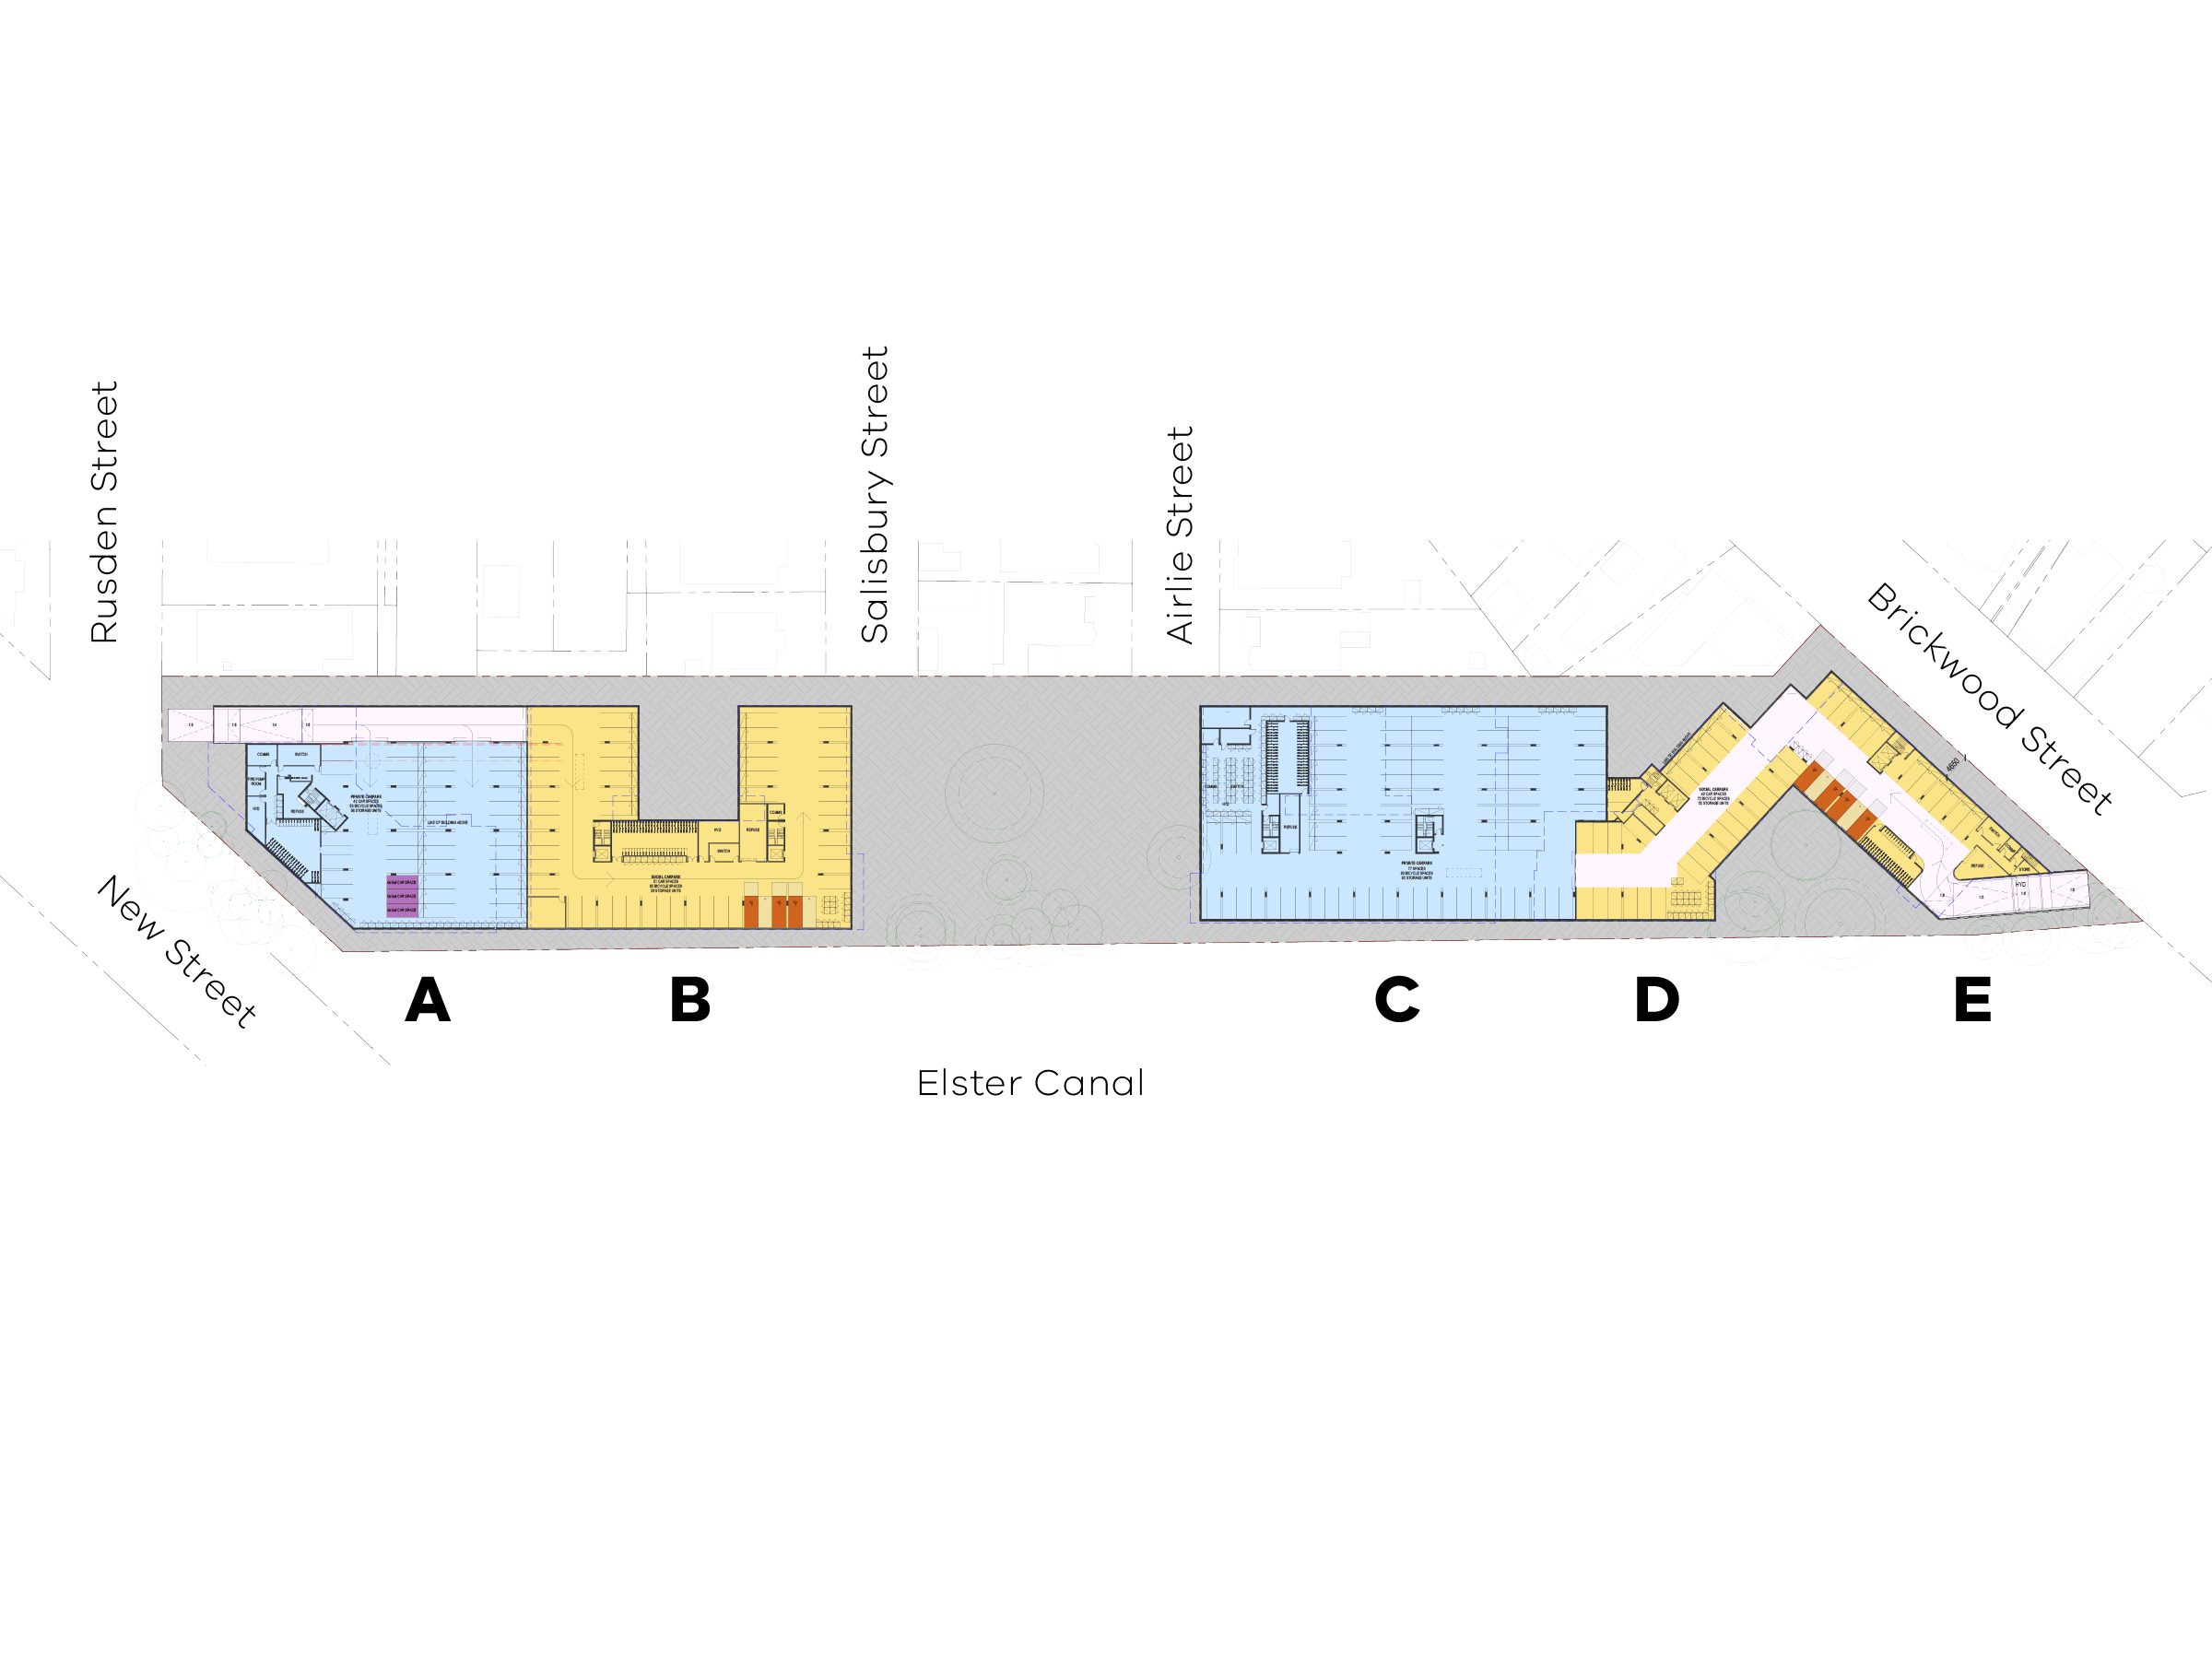 Diagram showing the types of carparks in the new development